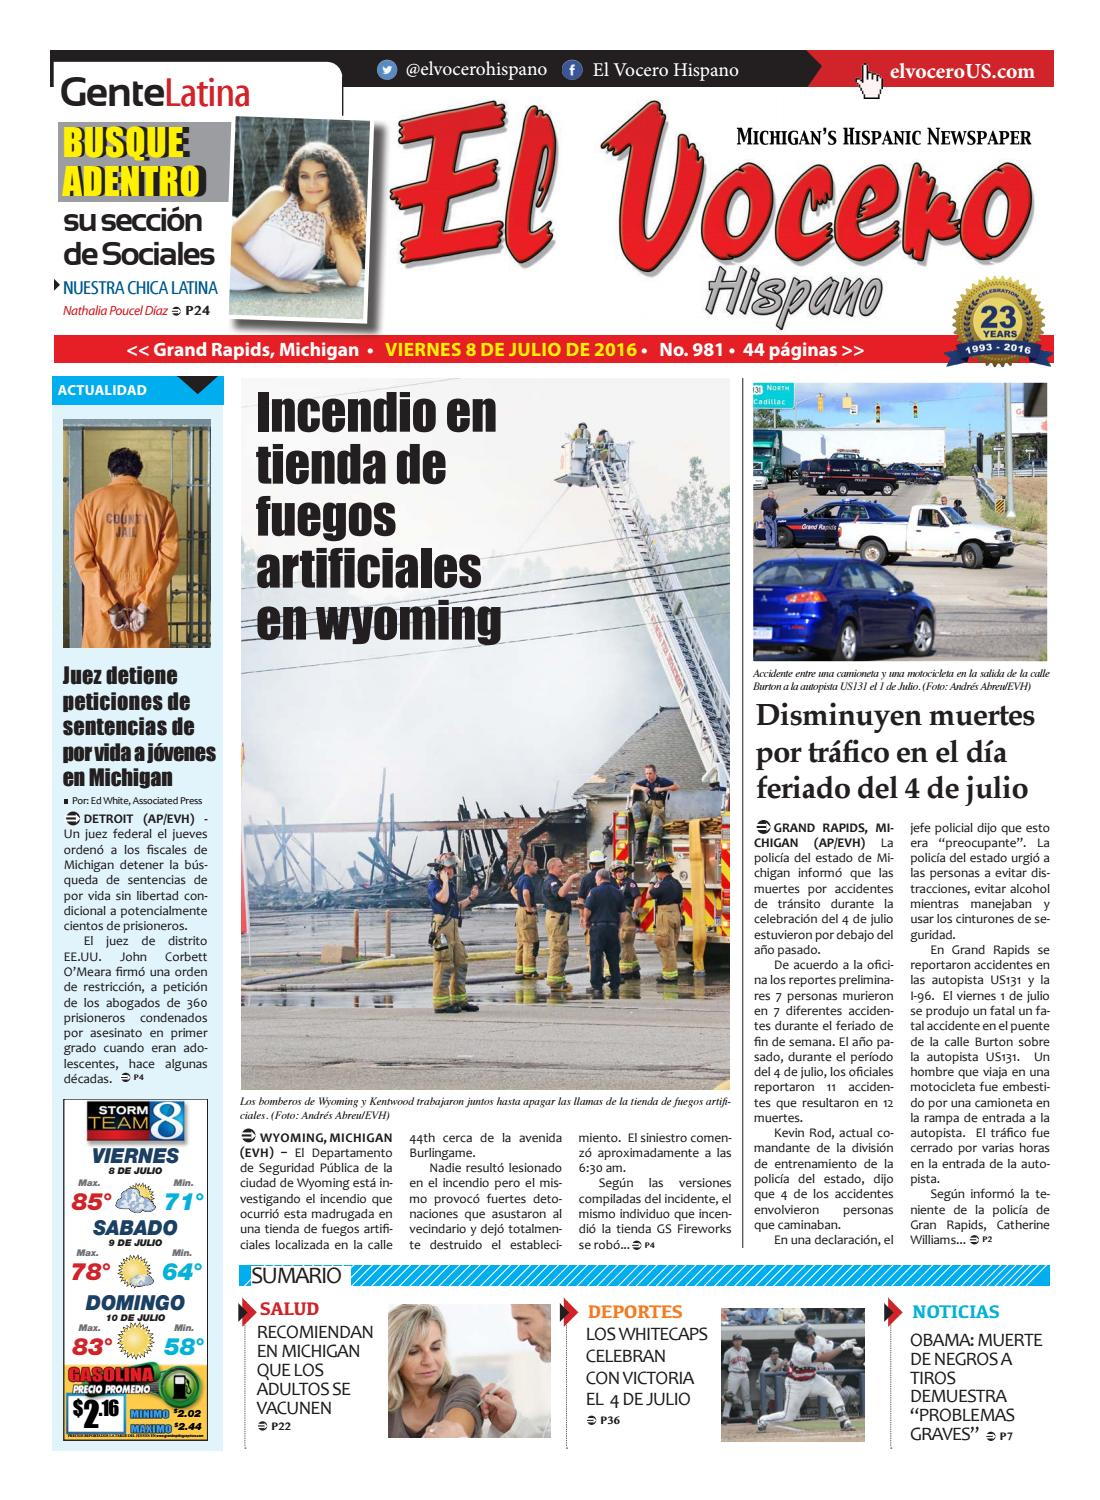 El Vocero Hispano 8 de Julio de 2016 by El Vocero Hispano - issuu